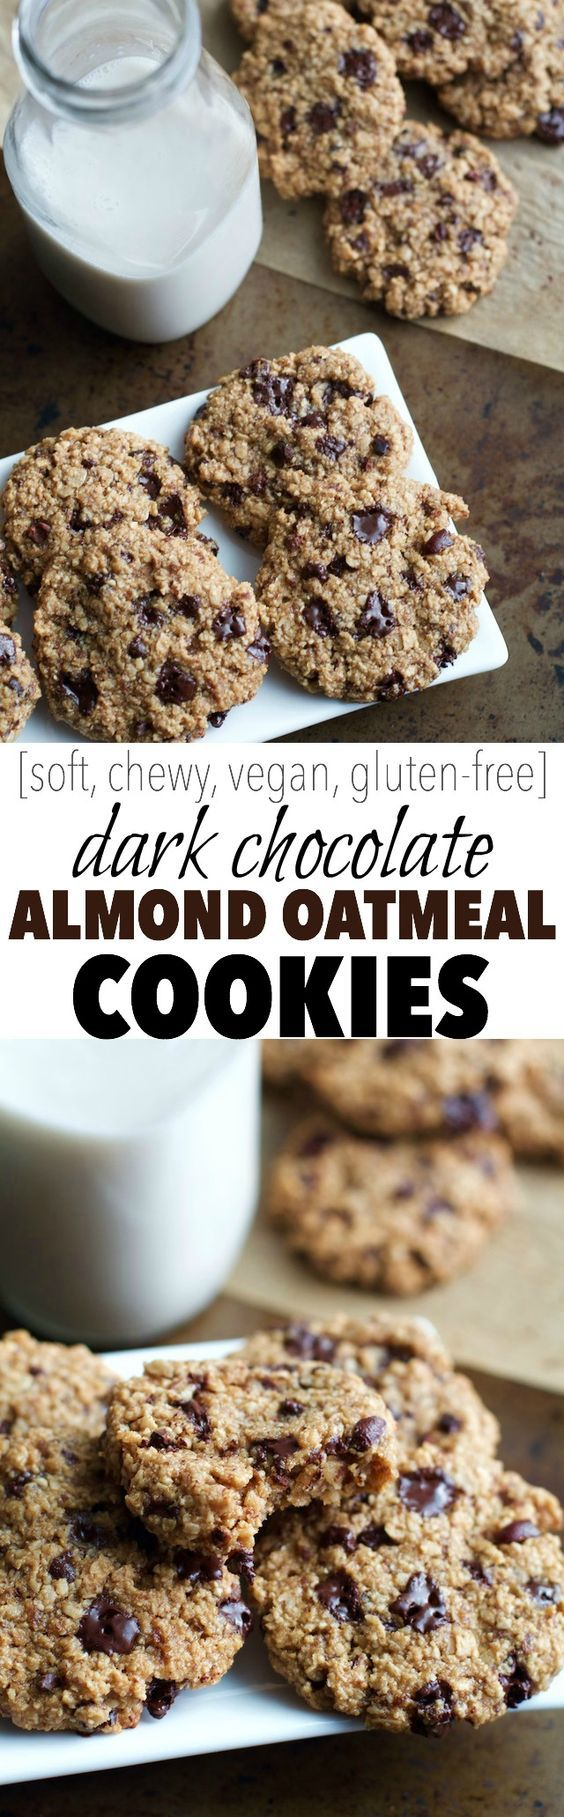 Dark Chocolate Almond Oatmeal Cookies -- bsp. ground flax seeds + 3 Tbsp. water** ¾ cup old fashioned oats ¾ cup blanched almond flour ½ tsp. baking powder ¼ tsp. salt ¼ cup coconut palm sugar*** 2 Tbsp. coconut oil, melted ½ tsp. vanilla extract ¼ cup dark chocolate chunks/chips/nibs